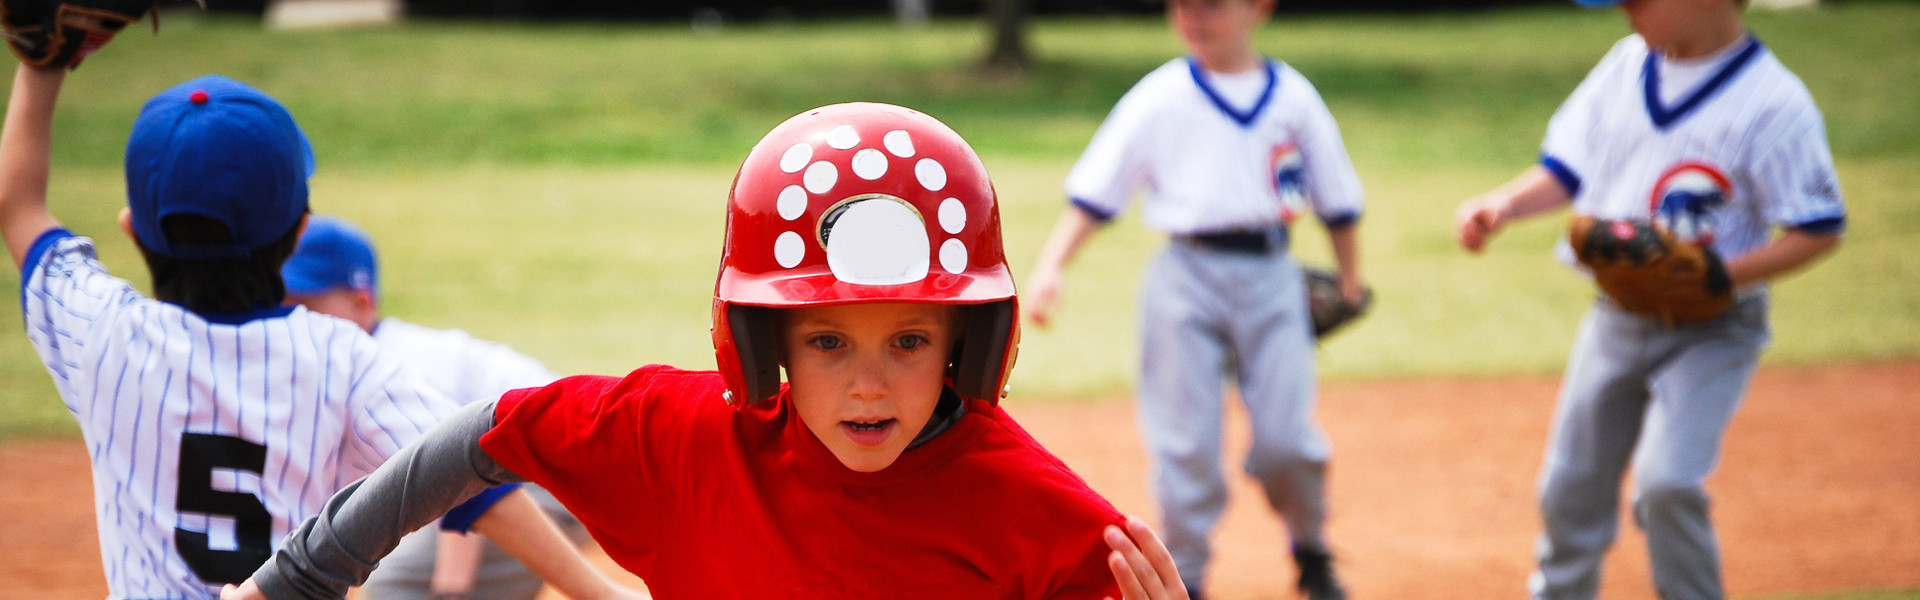 Sports Group Hotel Deals - baseball player running the bases